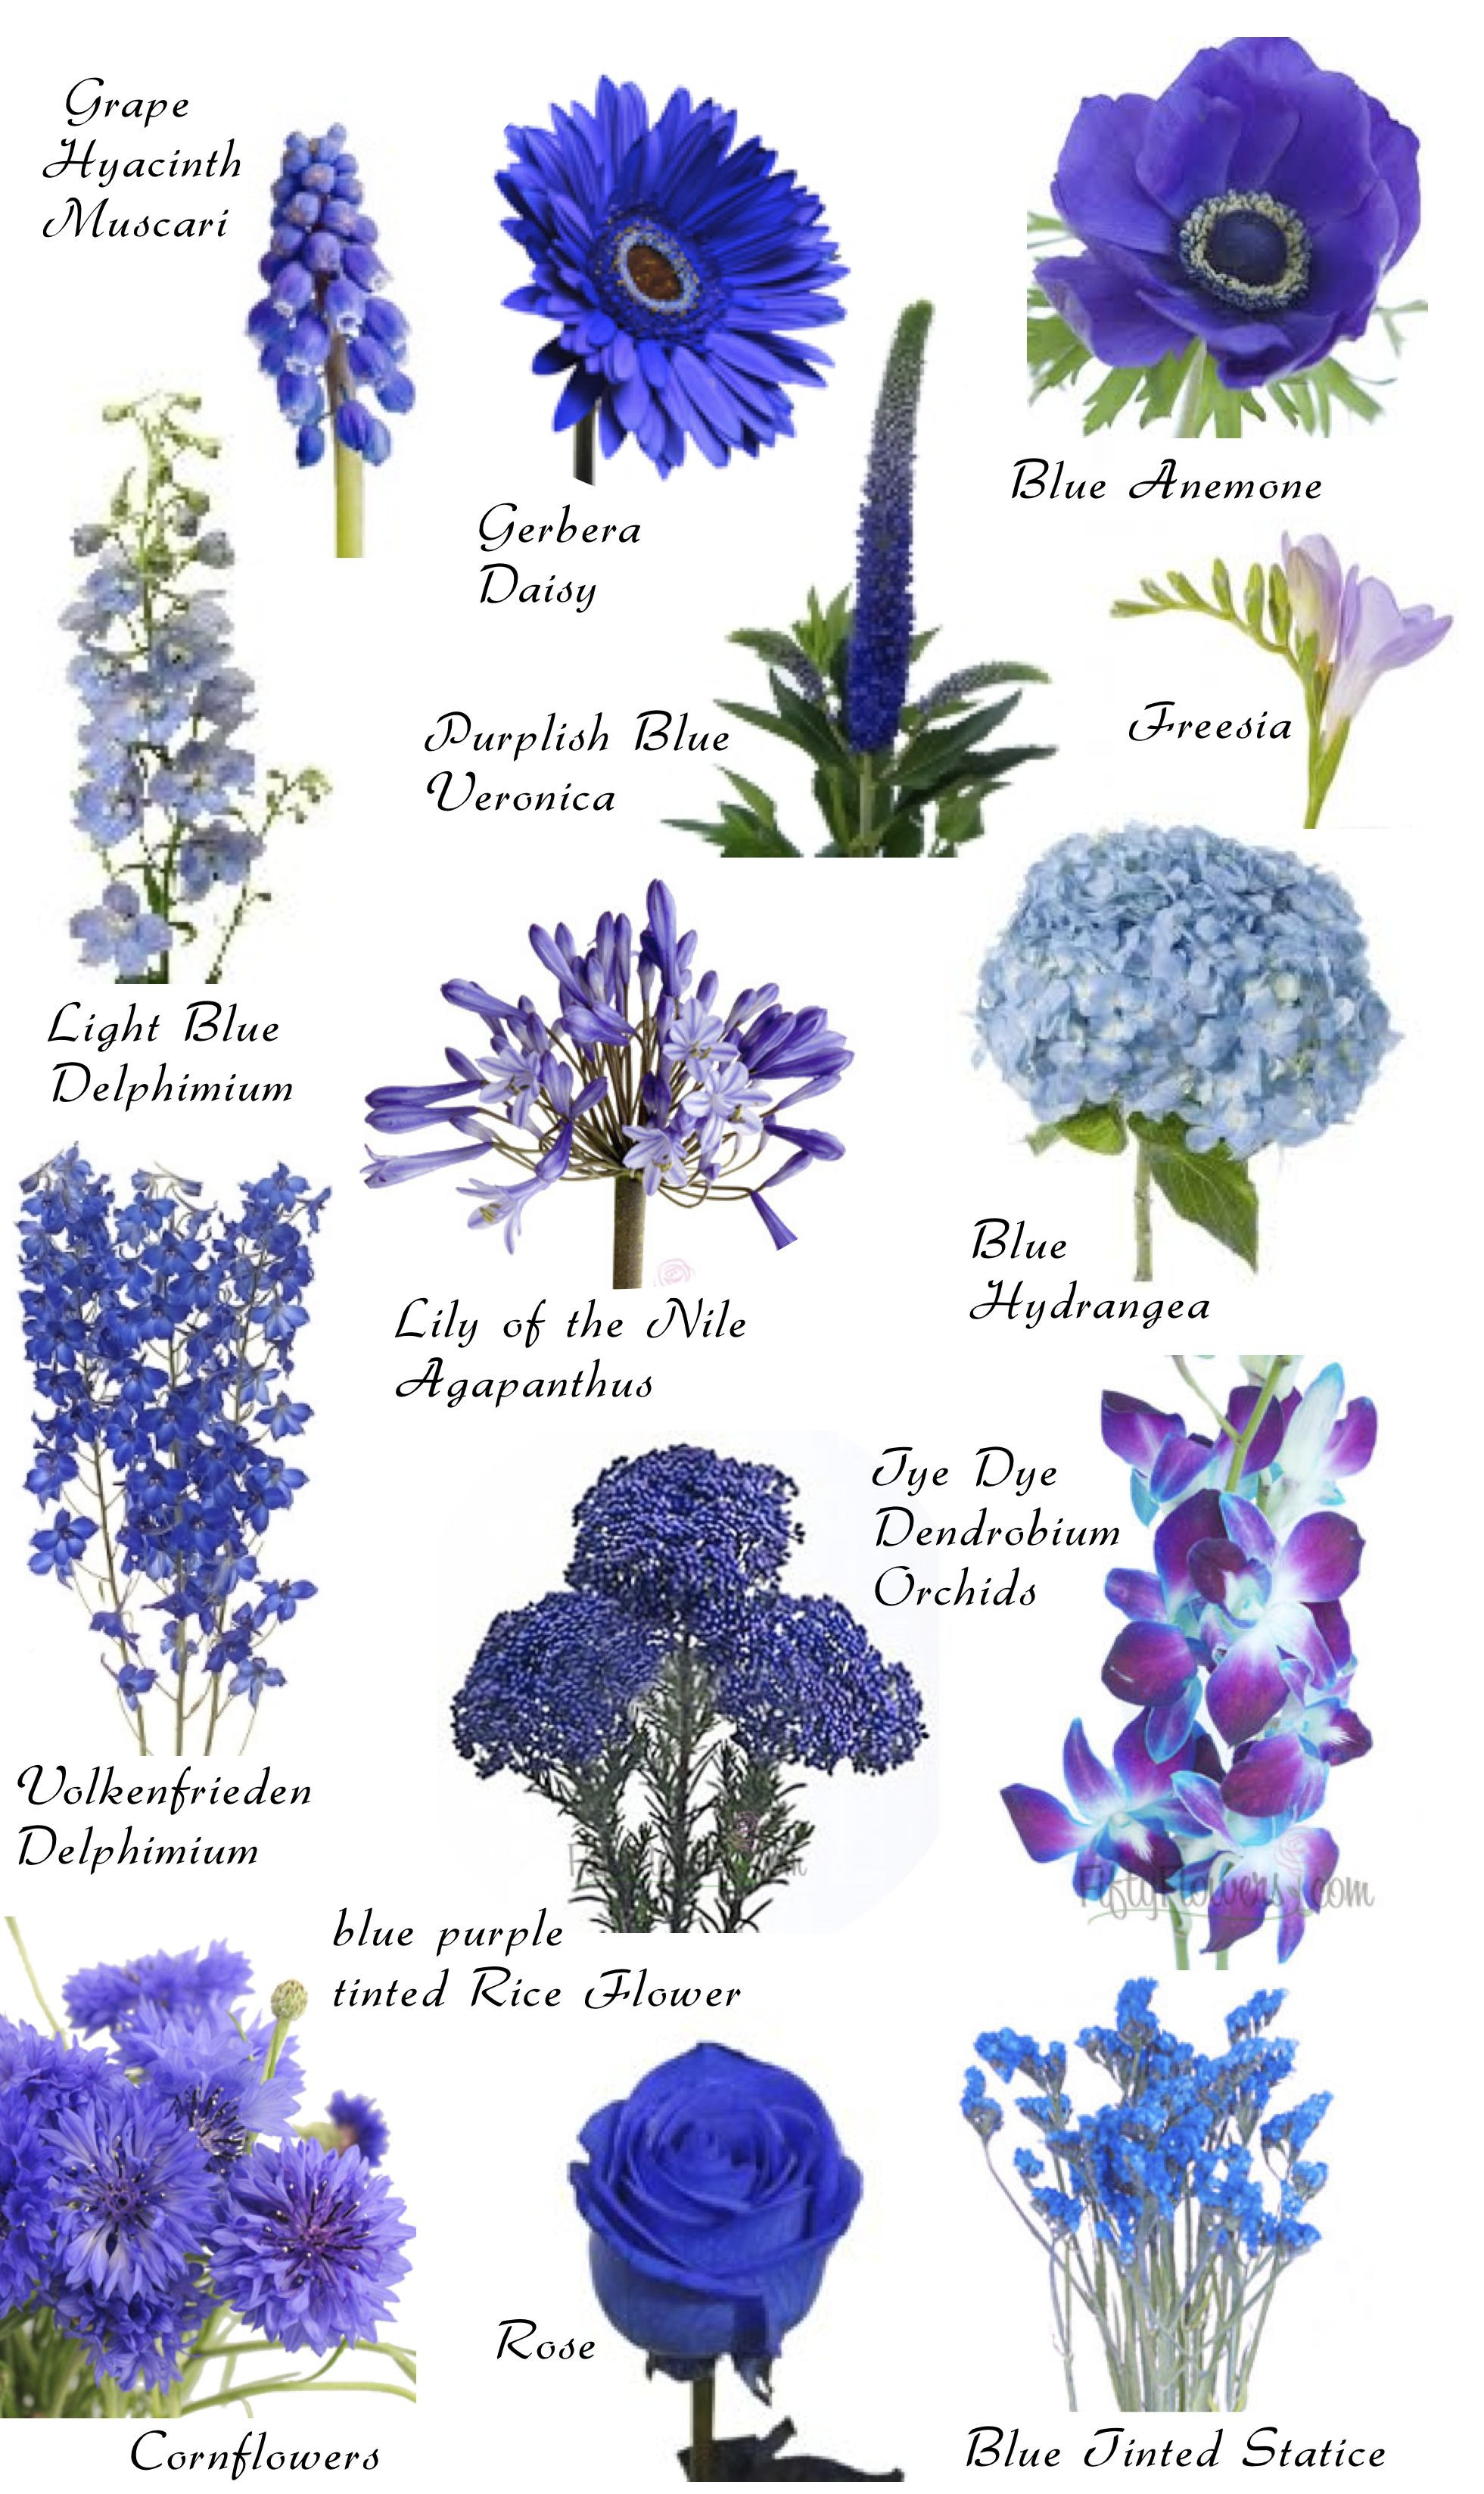 SO MANY FLOWERS Flowers by color So amazing and helpful